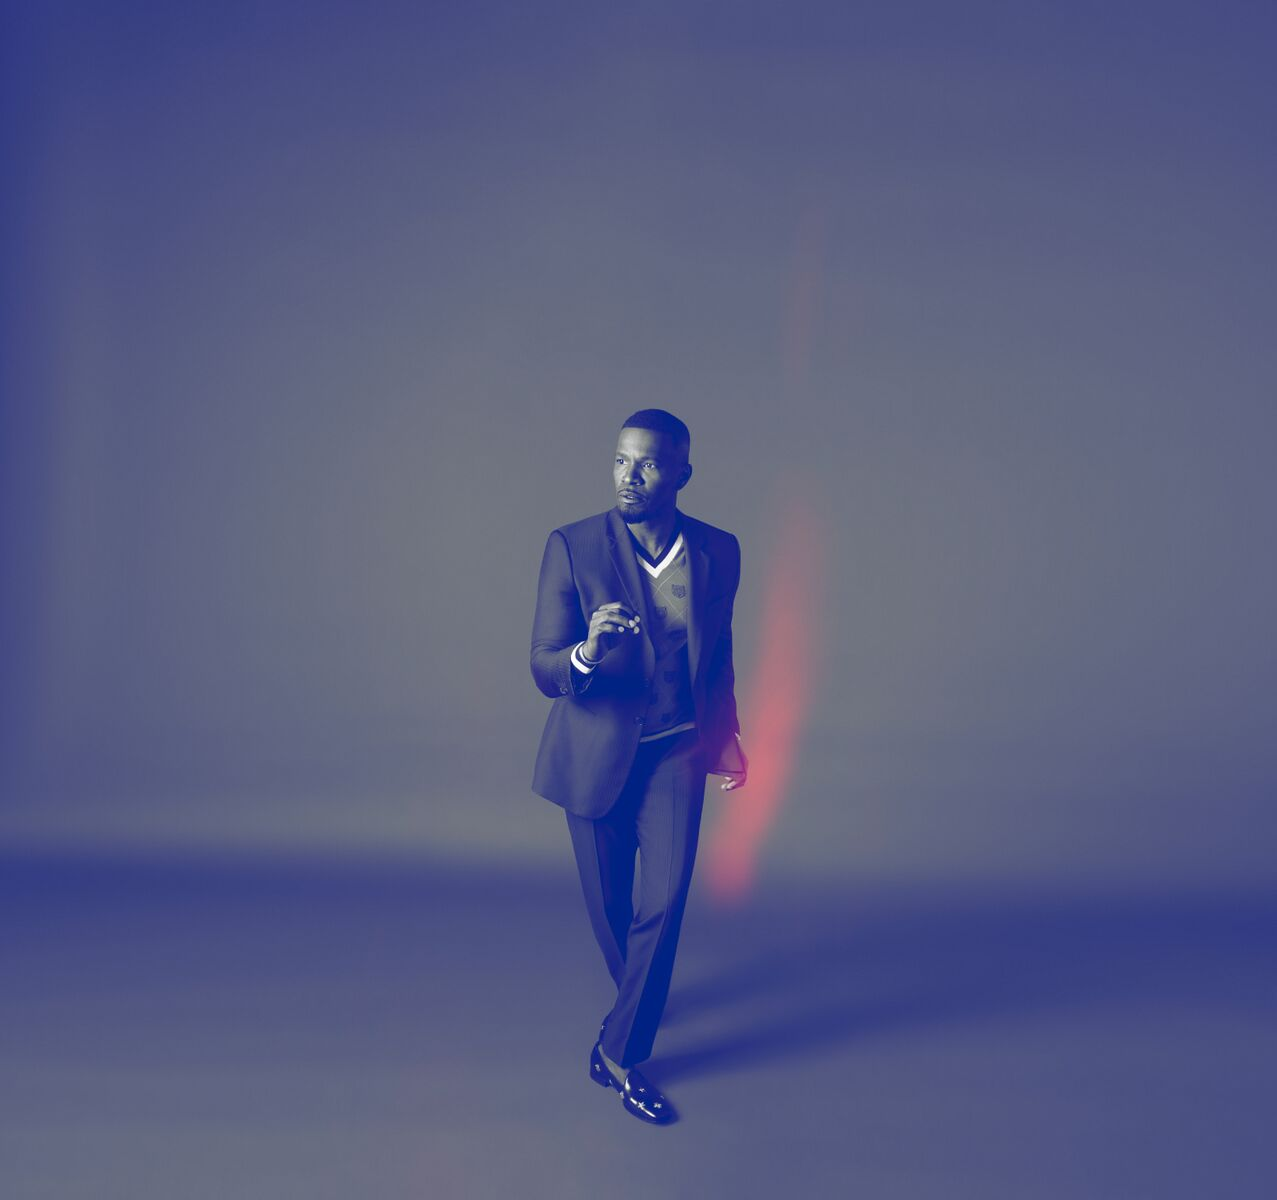 JamieFoxx_Shot_D_0611_V4_DUOTONE_V2_preview.jpg